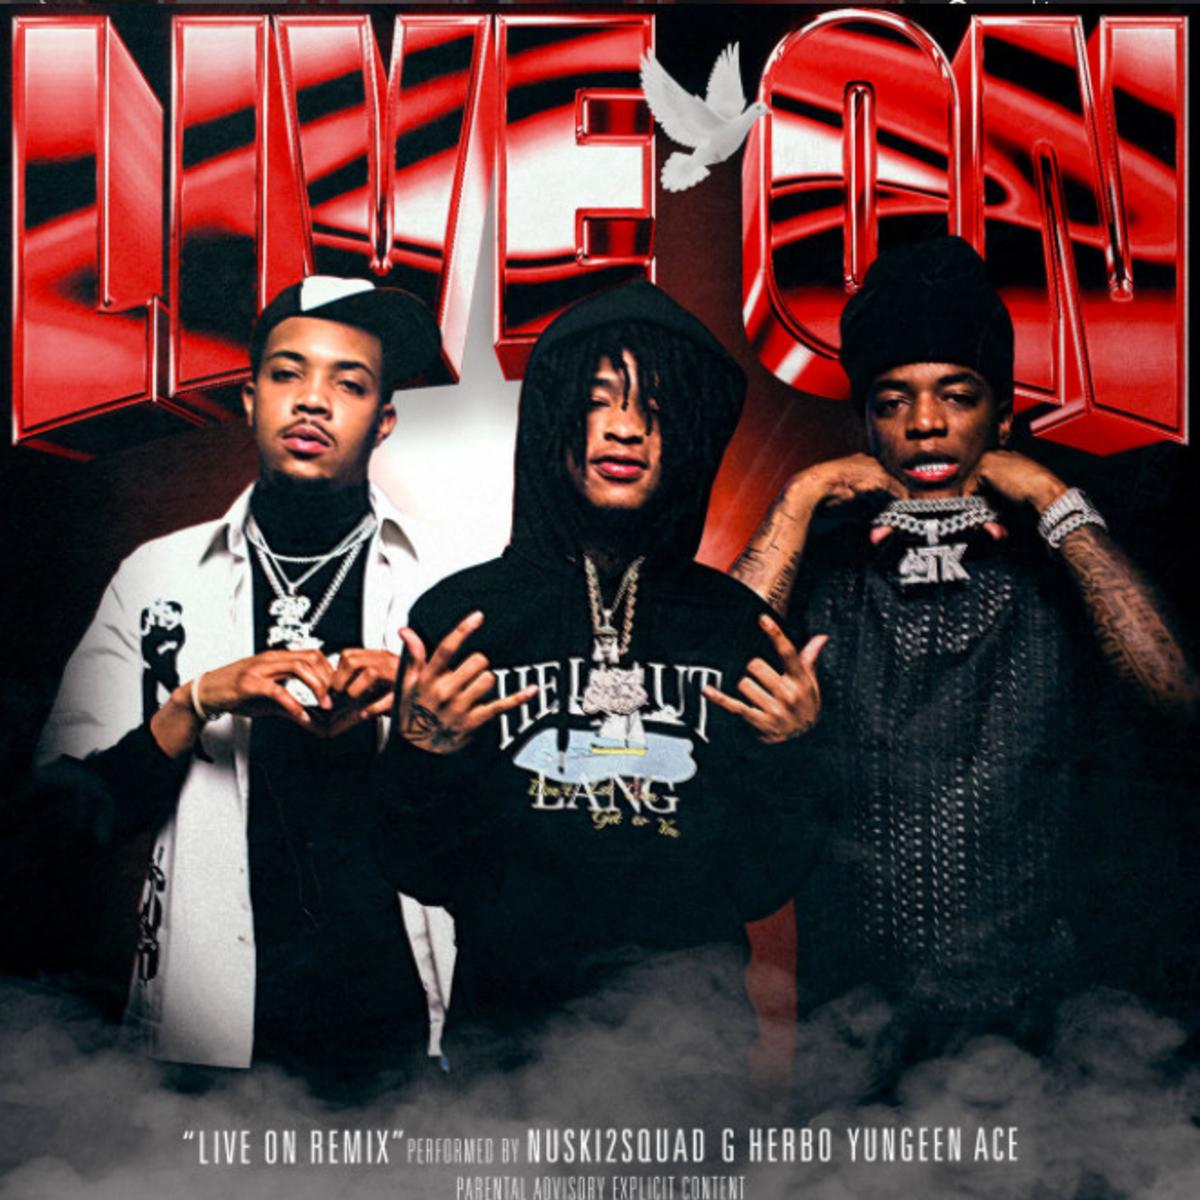 MP3: NUSKI2SQUAD - Live On (Thuggin Days) [Remix] Ft. G Herbo & Yungeen Ace